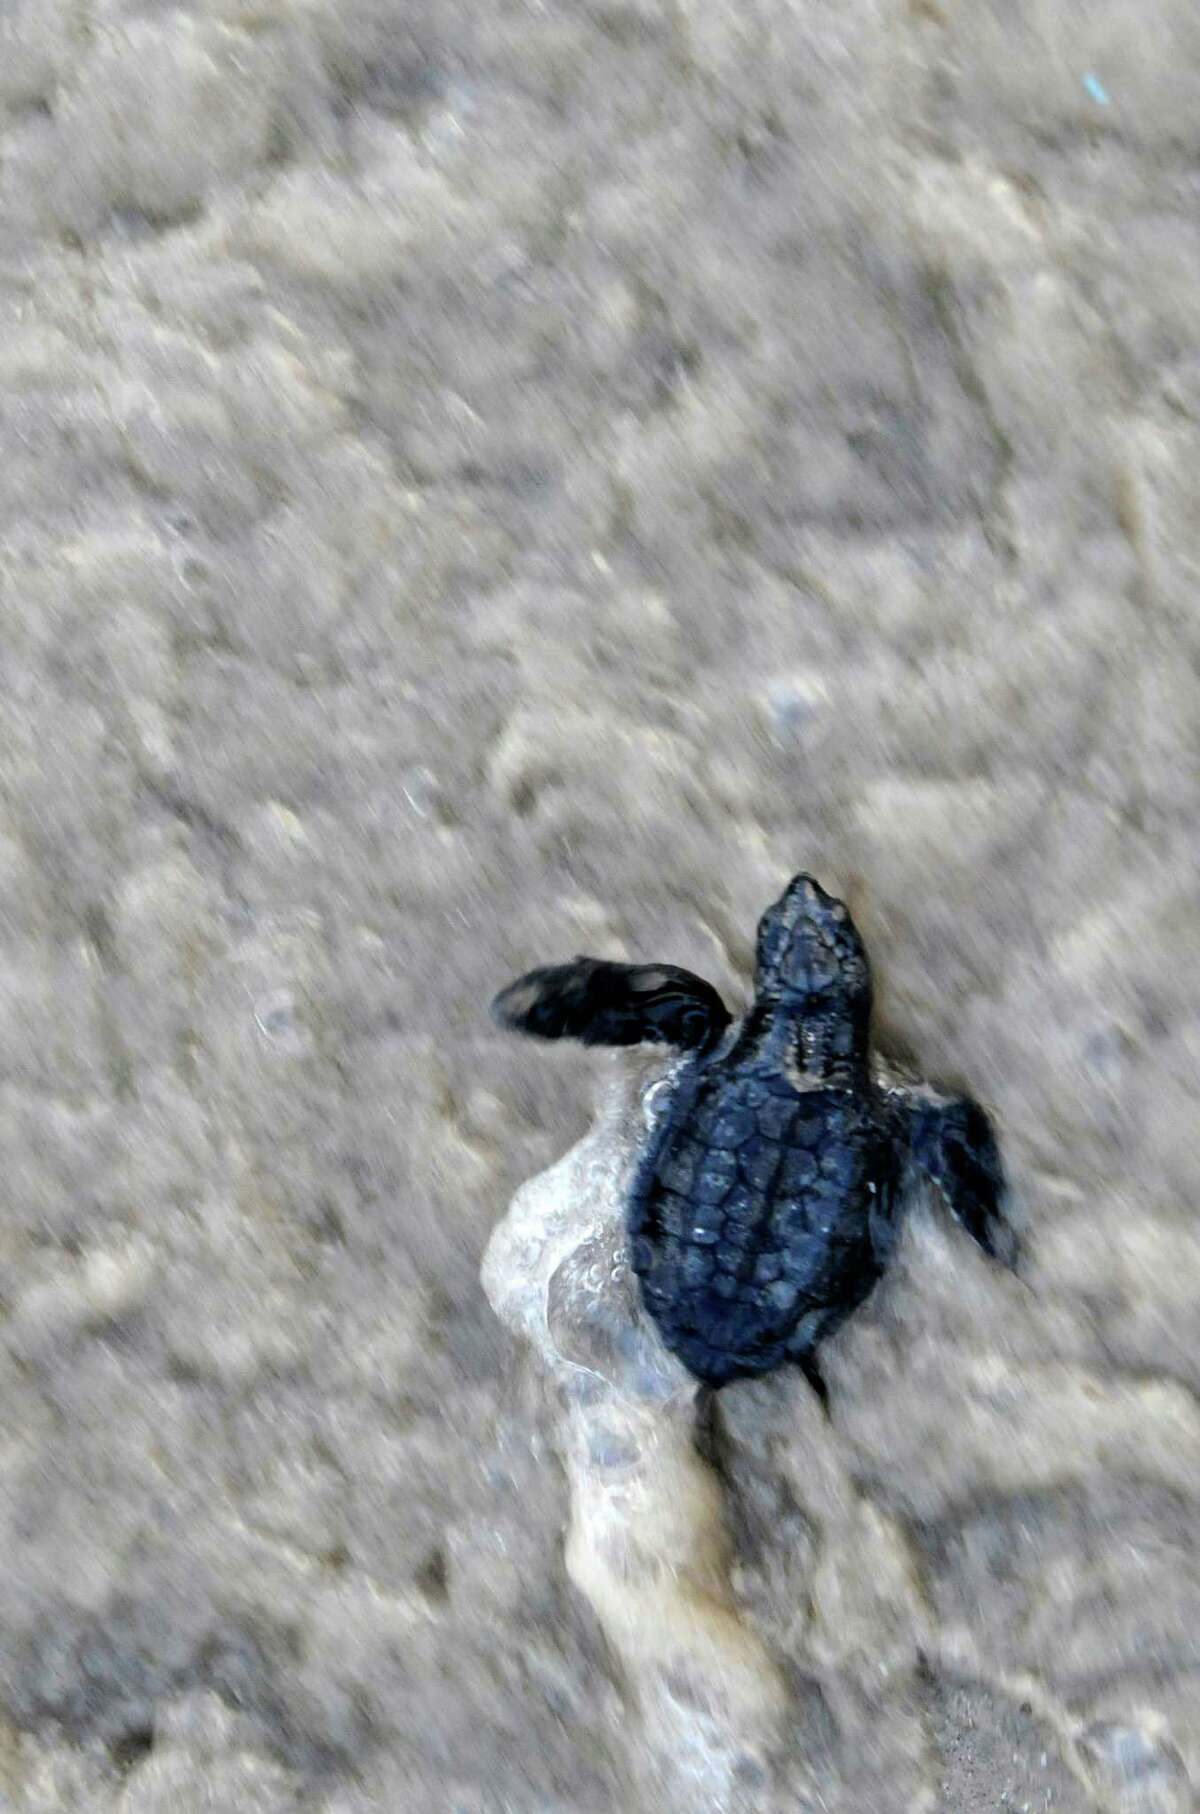 A Kemp's ridley hatchling makes its way through the surf after being released into the Gulf of Mexico in 2010 at Padre Island National Seashore.